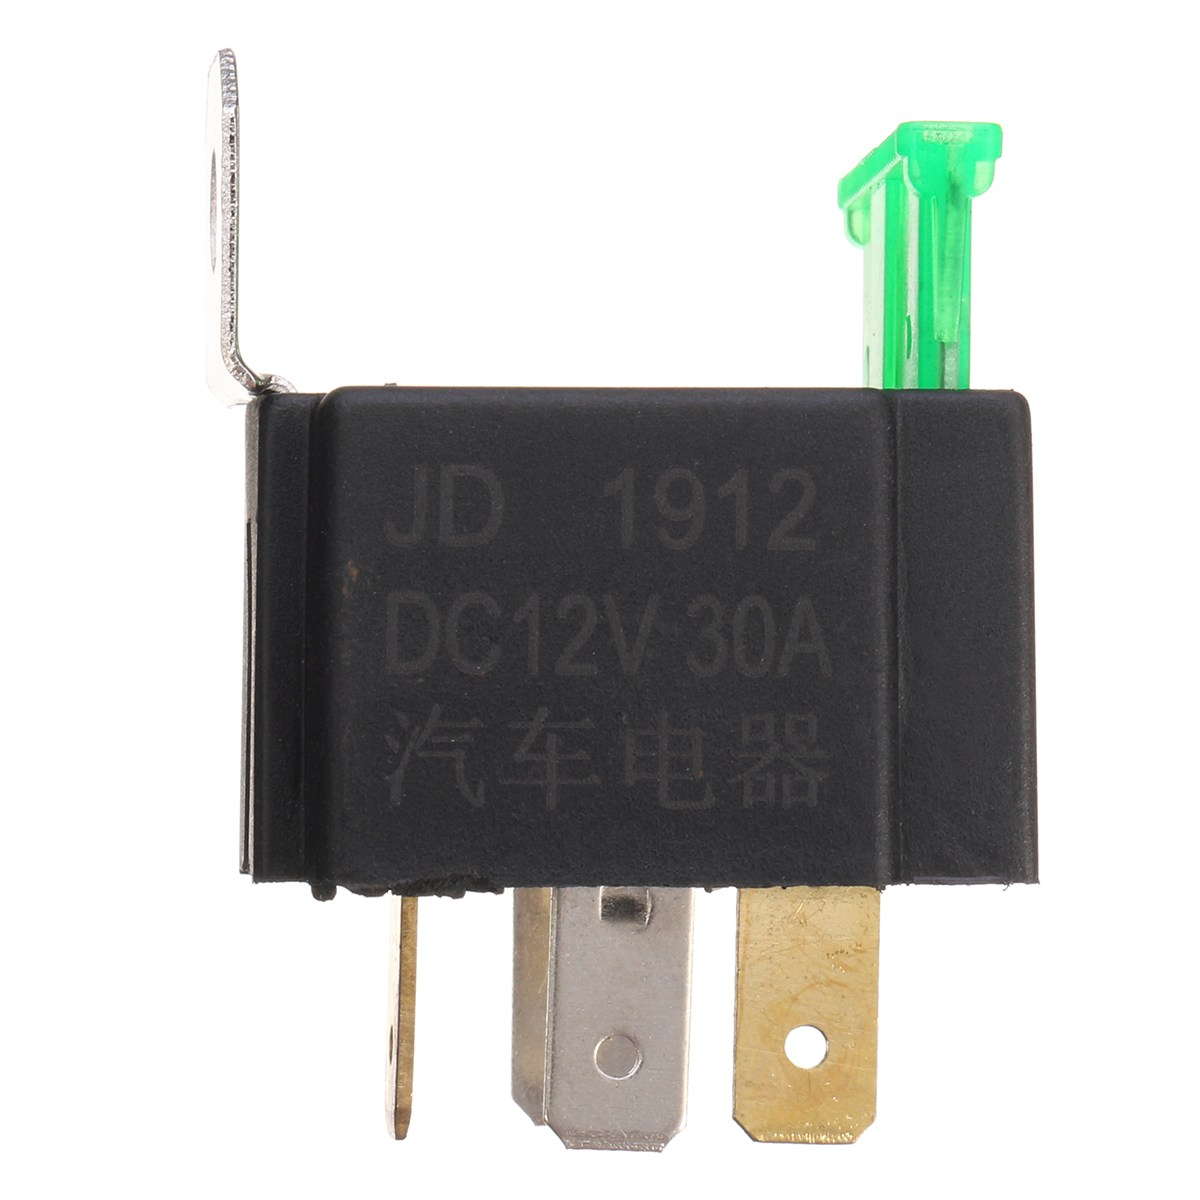 DC 12V ON/OFF 4 Pin Relay 30 Amp Fuse Base Box Holder Bracket Fog Light  Lamp New-in Car Switches & Relays from Automobiles & Motorcycles on  Aliexpress.com ...